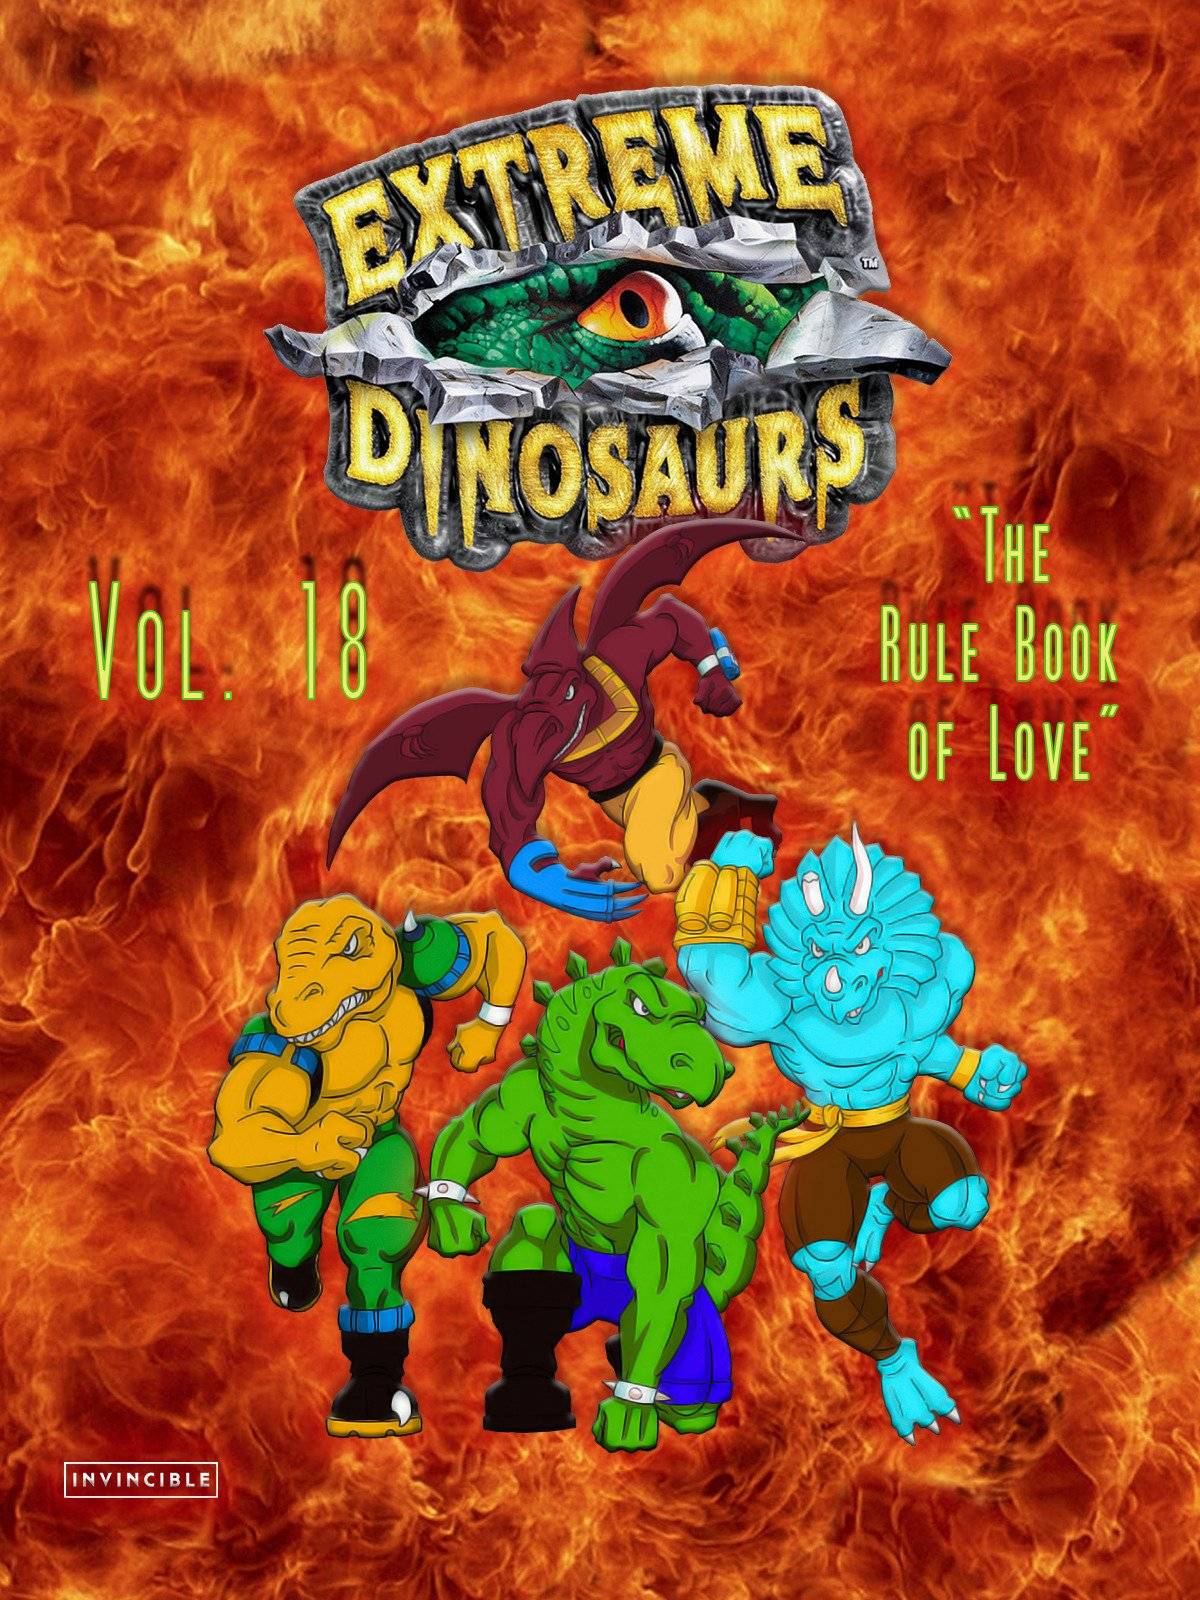 Extreme Dinosaurs Vol. 18The Rule Book of Love